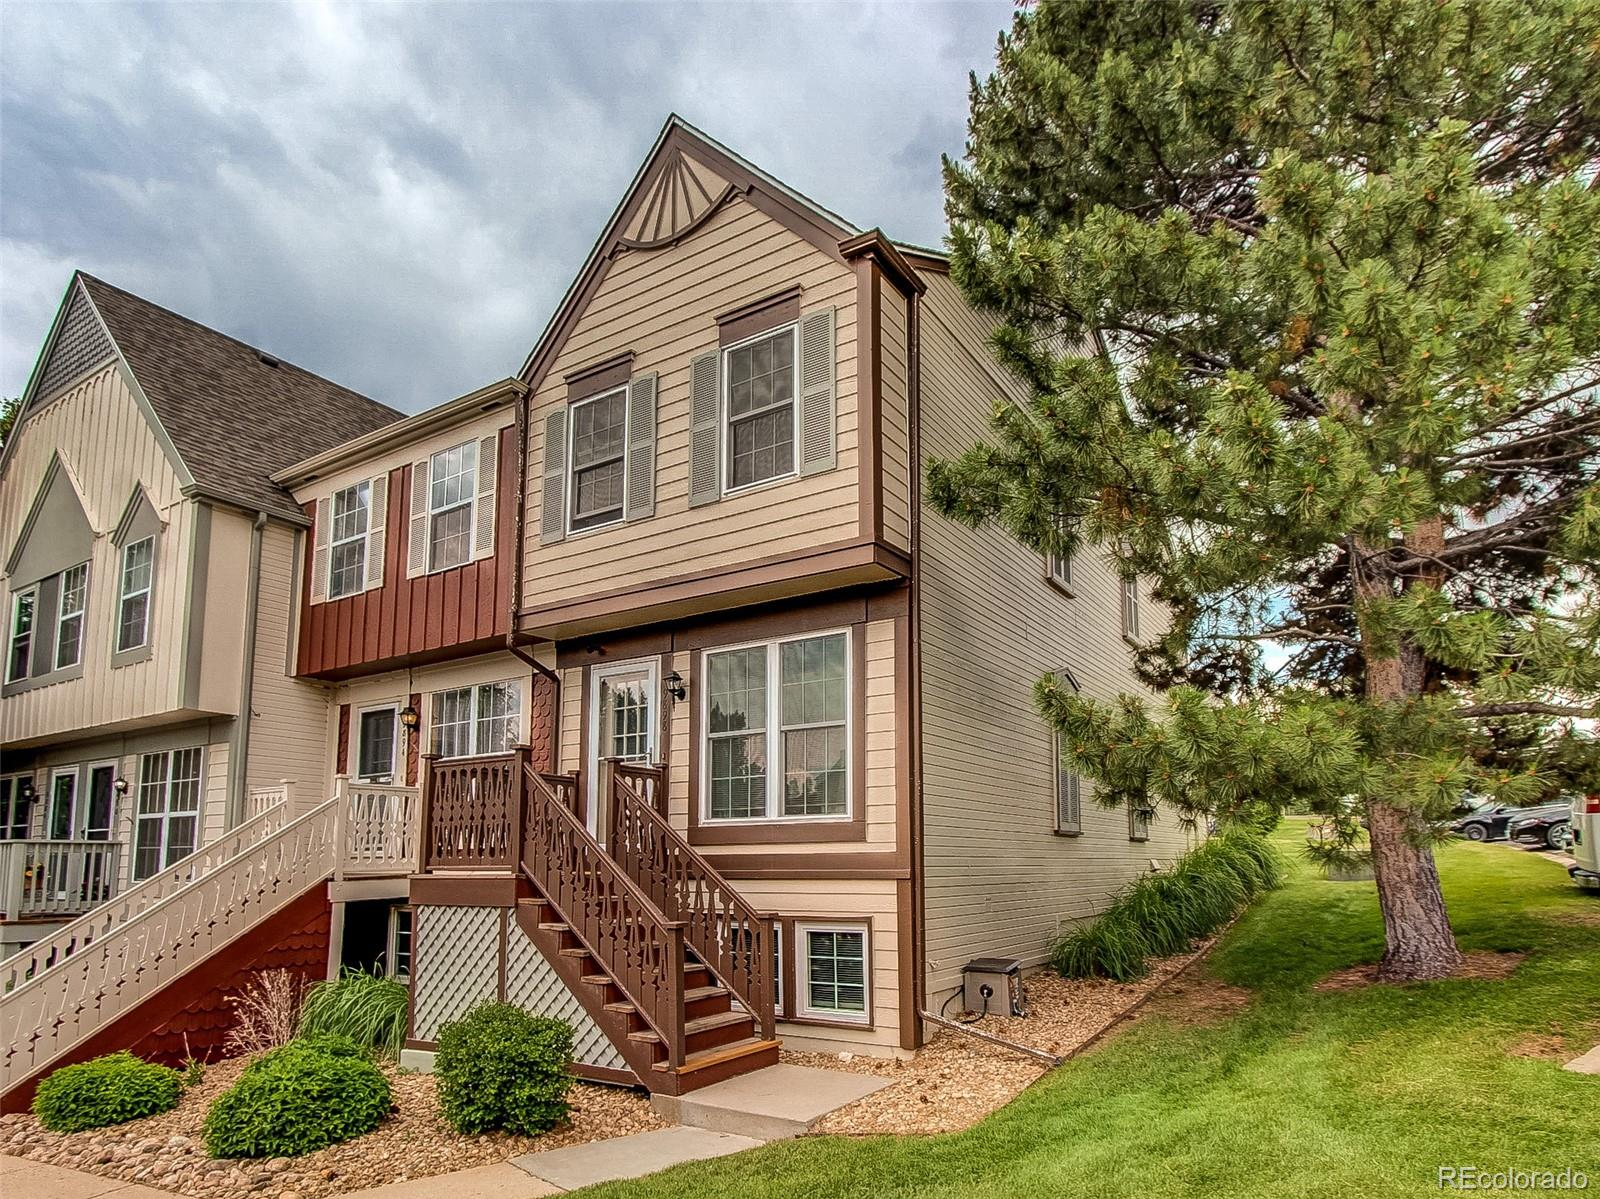 9898 W Cornell Place Property Photo - Lakewood, CO real estate listing